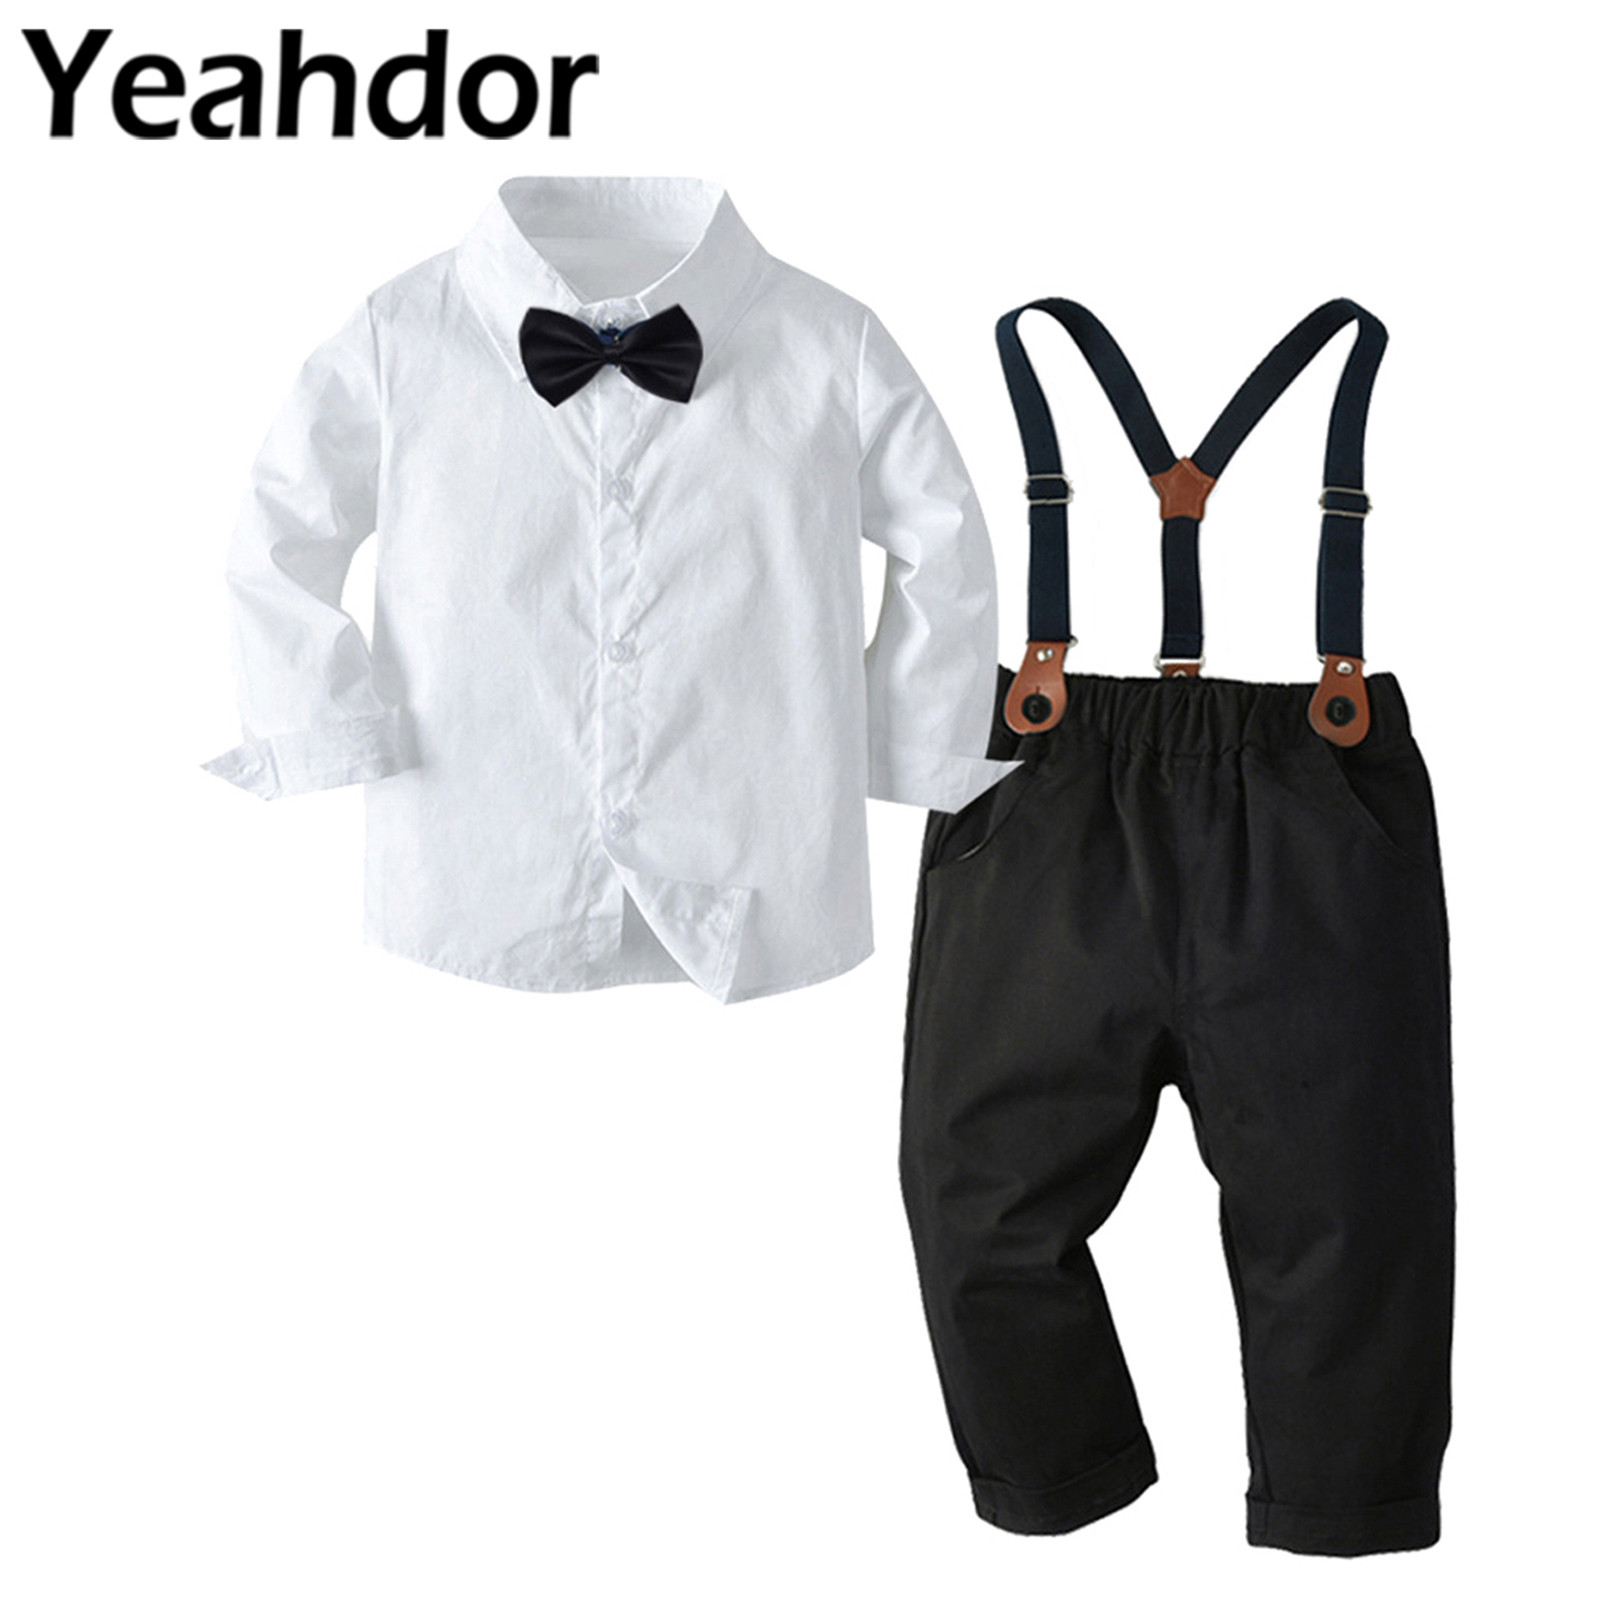 Boy's Wedding Suits Kids Clothing Sets Long Sleeve Shirts + Pants Children's Gentleman Outfit Birthday Party Costume Boys Suits